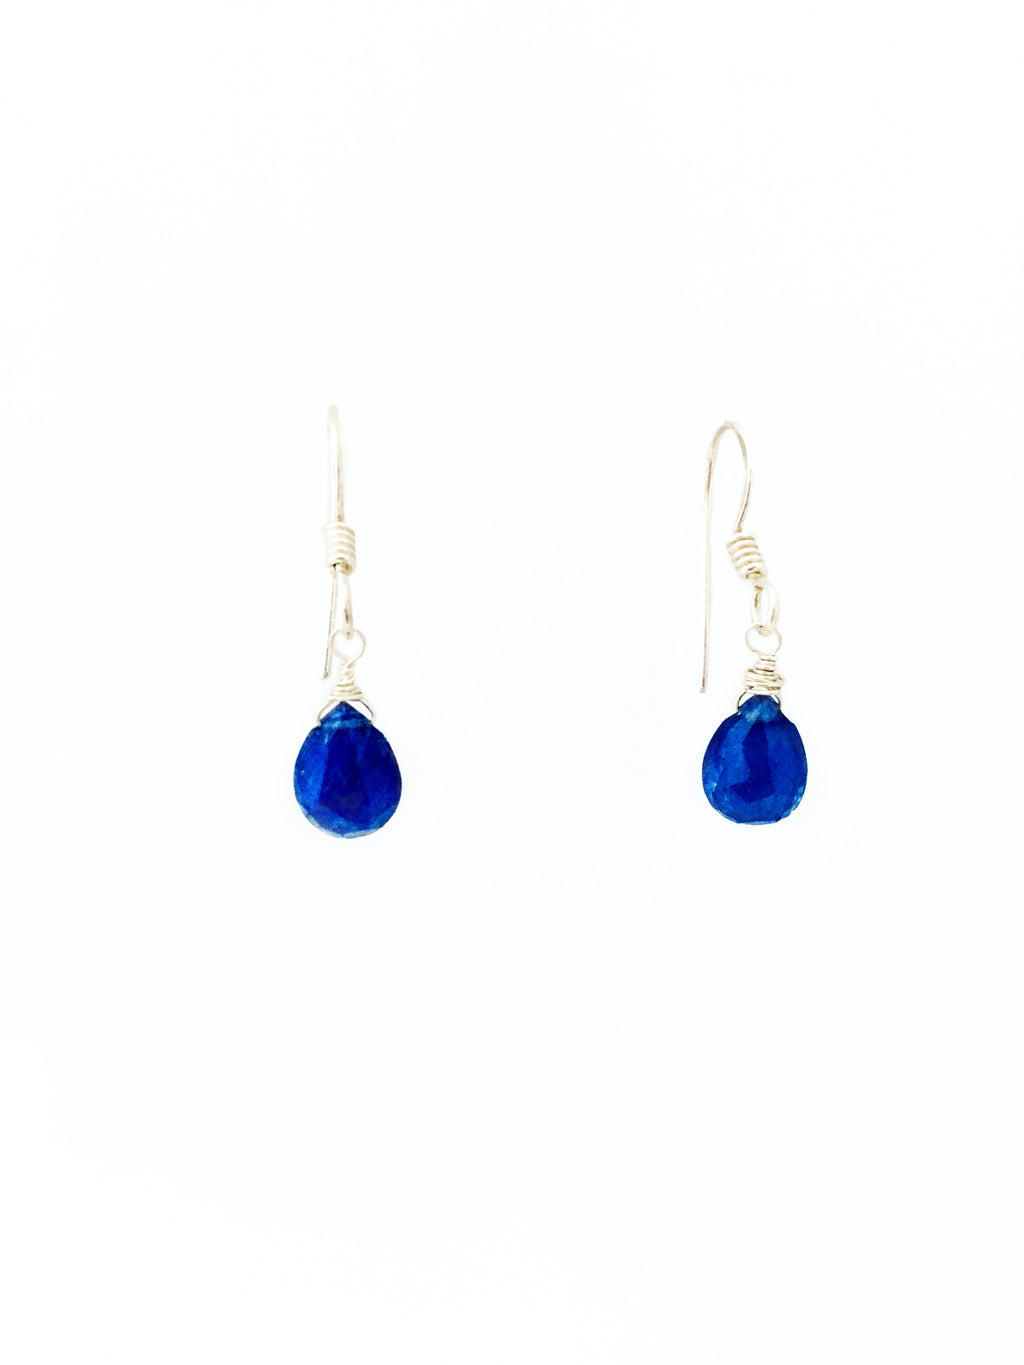 Sapphire & Sterling Silver Earrings